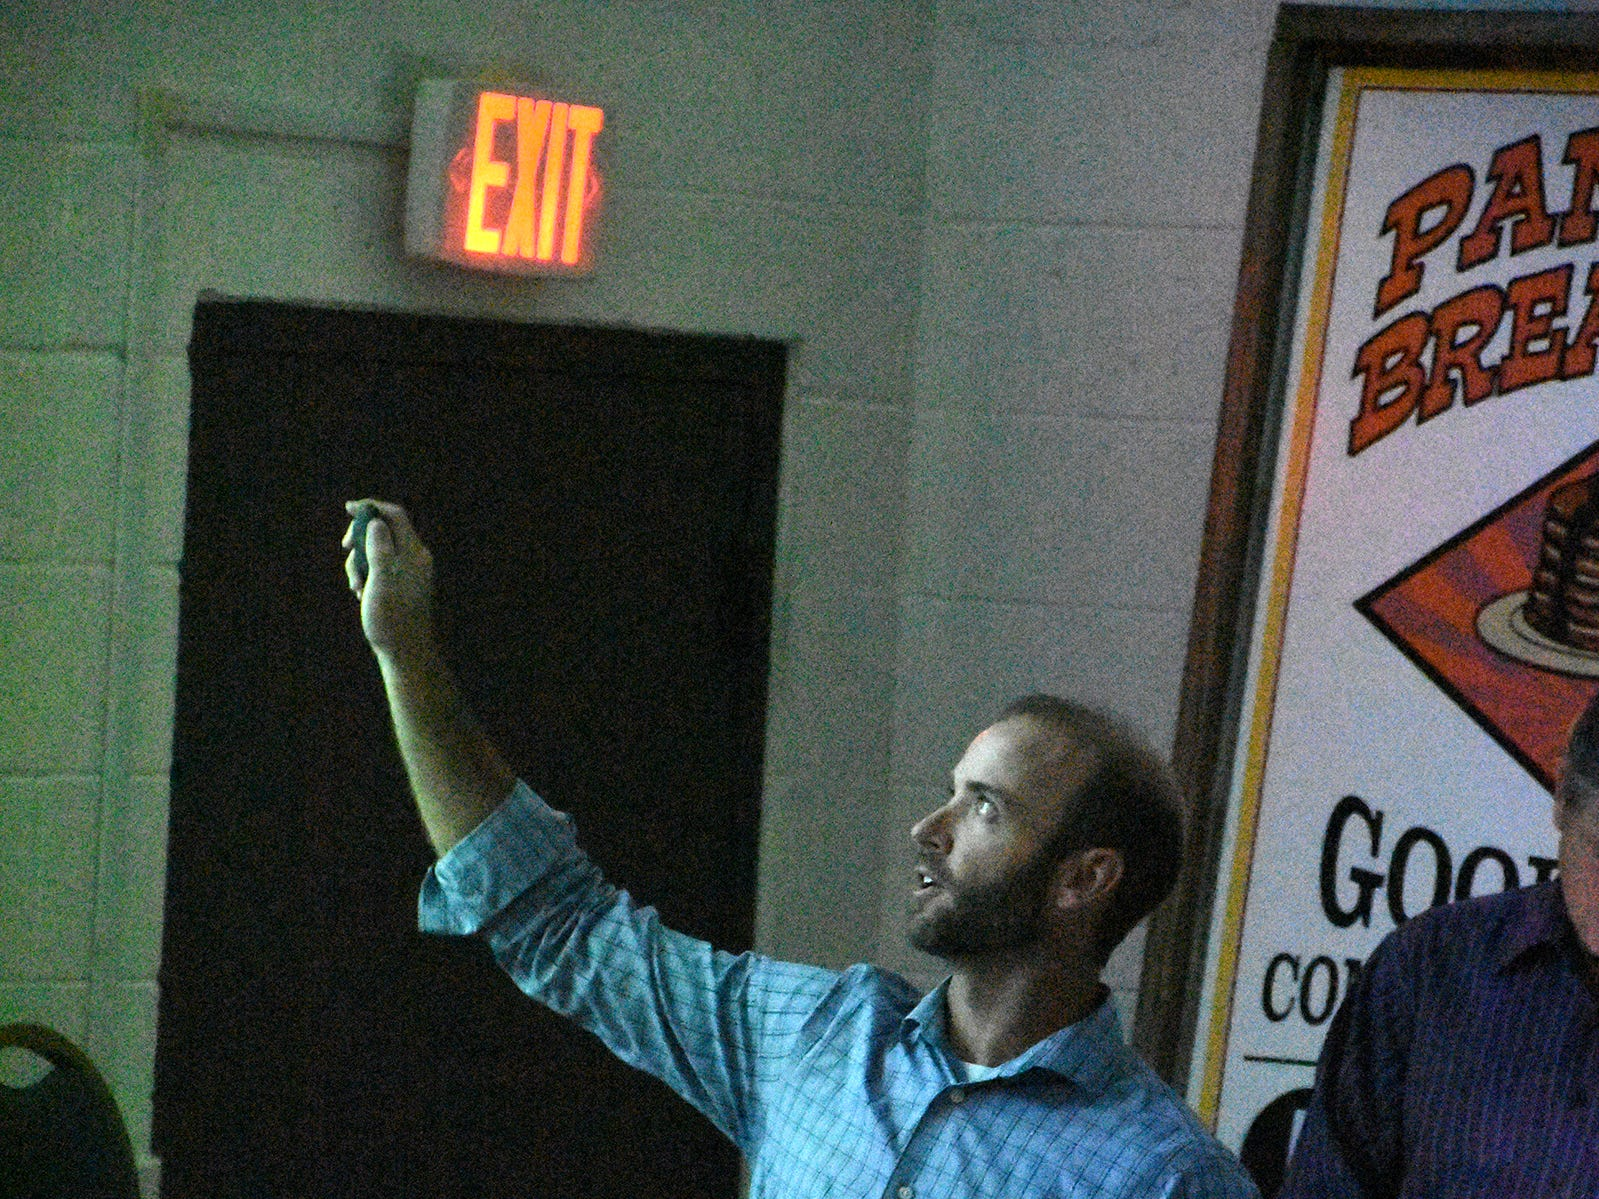 Consultant Daniel Flynn gives a slide presentation on the roadwork. County planners held a public information meeting at the Goodland Community Center on Thursday evening, to go over plans and solicit resident input on the upcoming work to improve Goodland Drive.